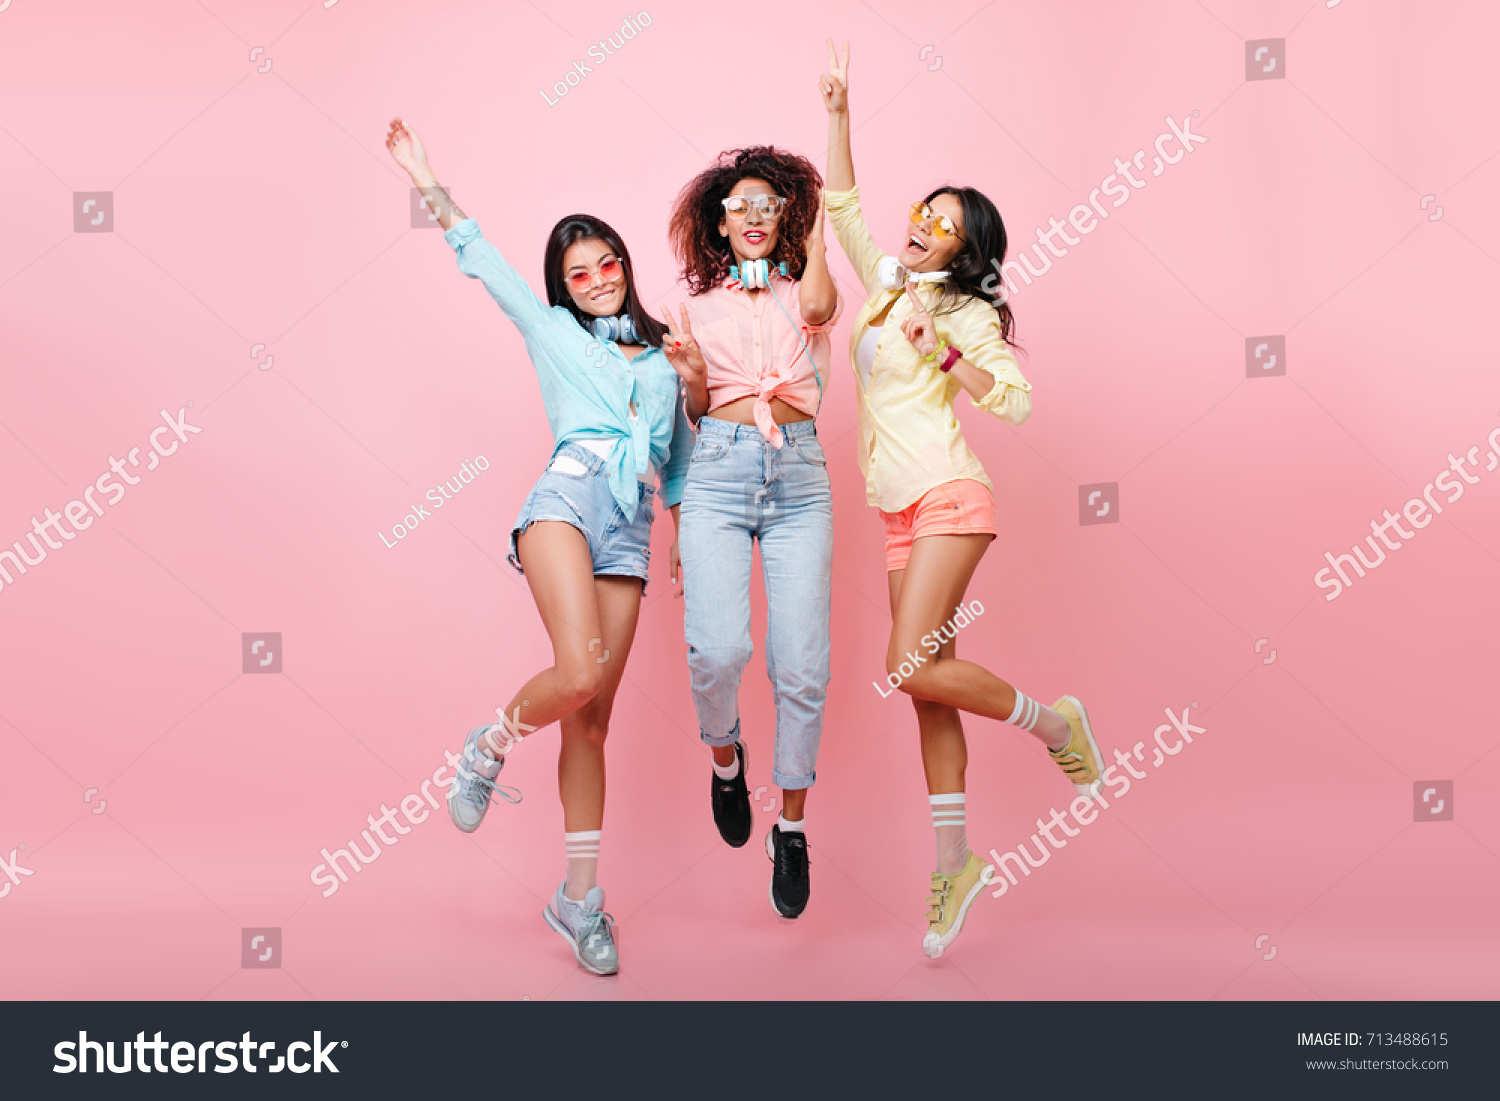 Curly african woman in jeans jumping while posing with international university friends. Tanned latin girl in yellow shirt dancing on pink background and having fun with other ladies. #713488615